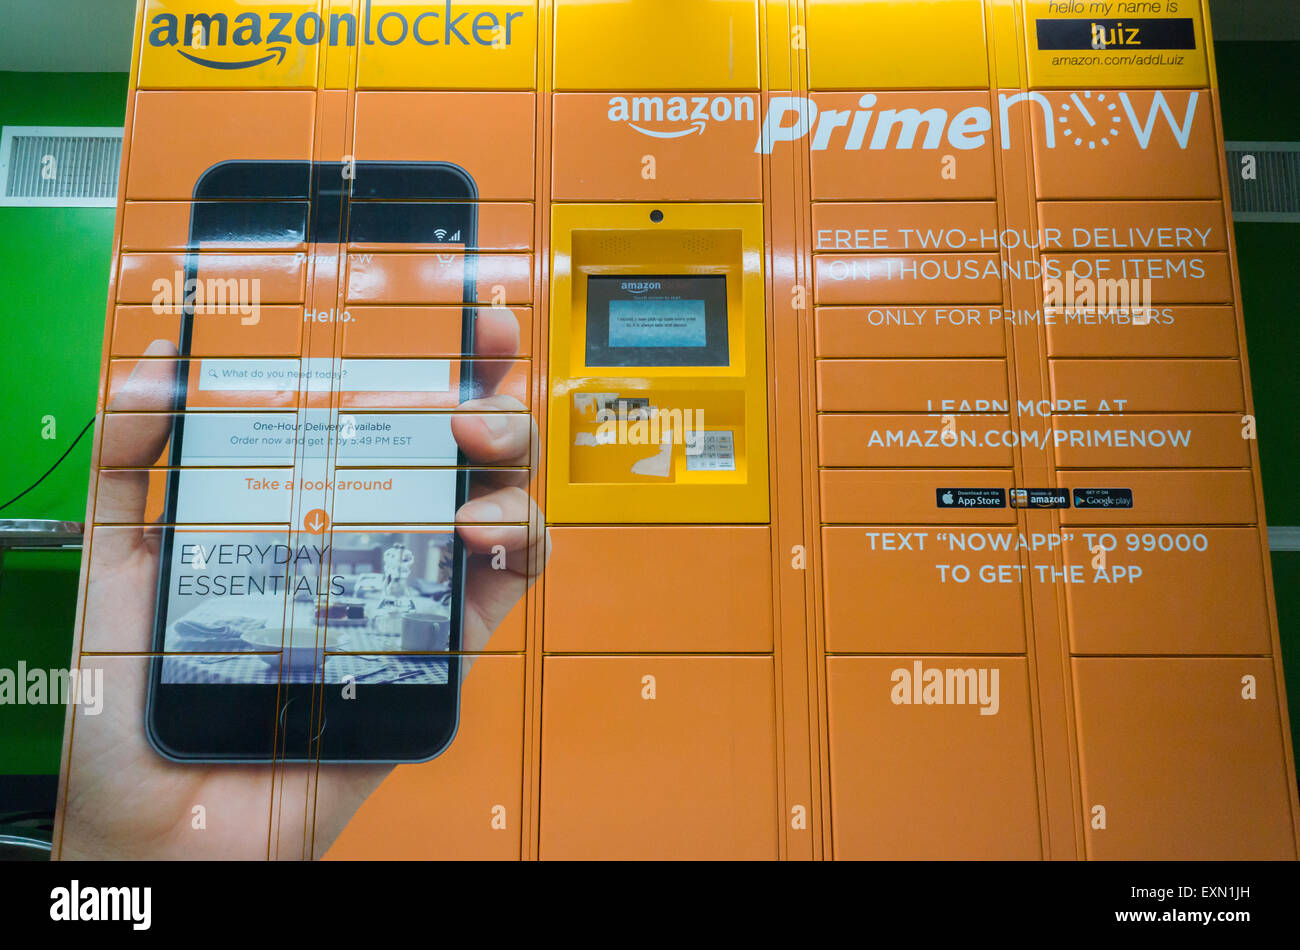 An Amazon Locker pick-up station in a convenience store New York on Saturday, July 11, 2015. The lockers, placed - Stock Image